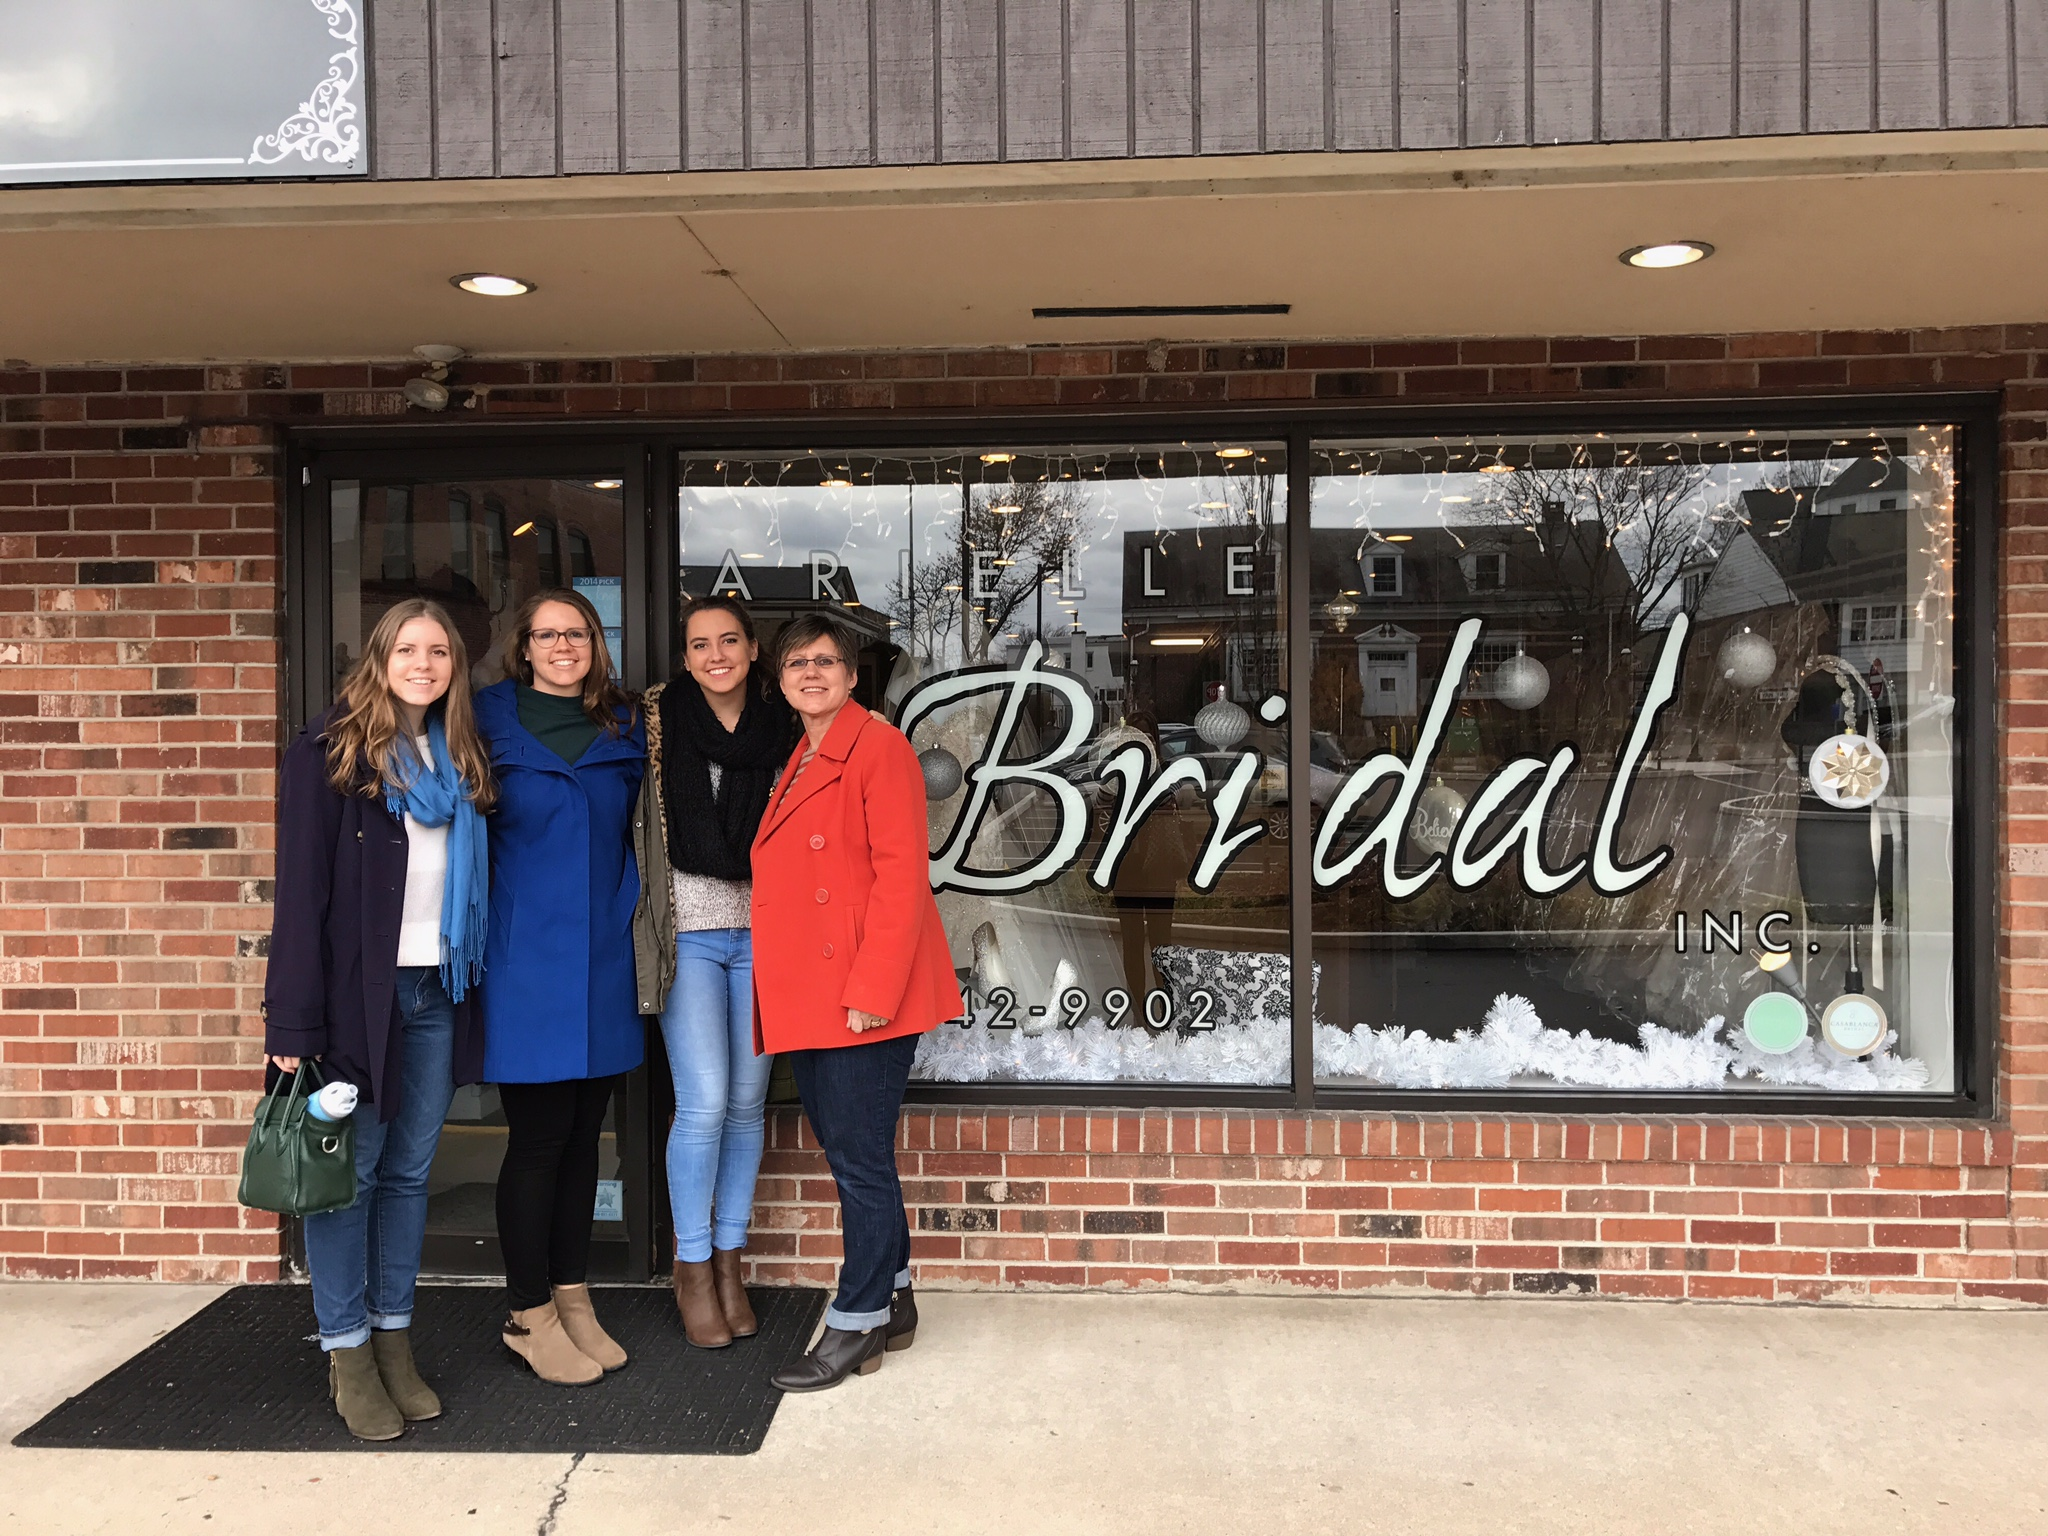 picture of four women in front of a bridal salon